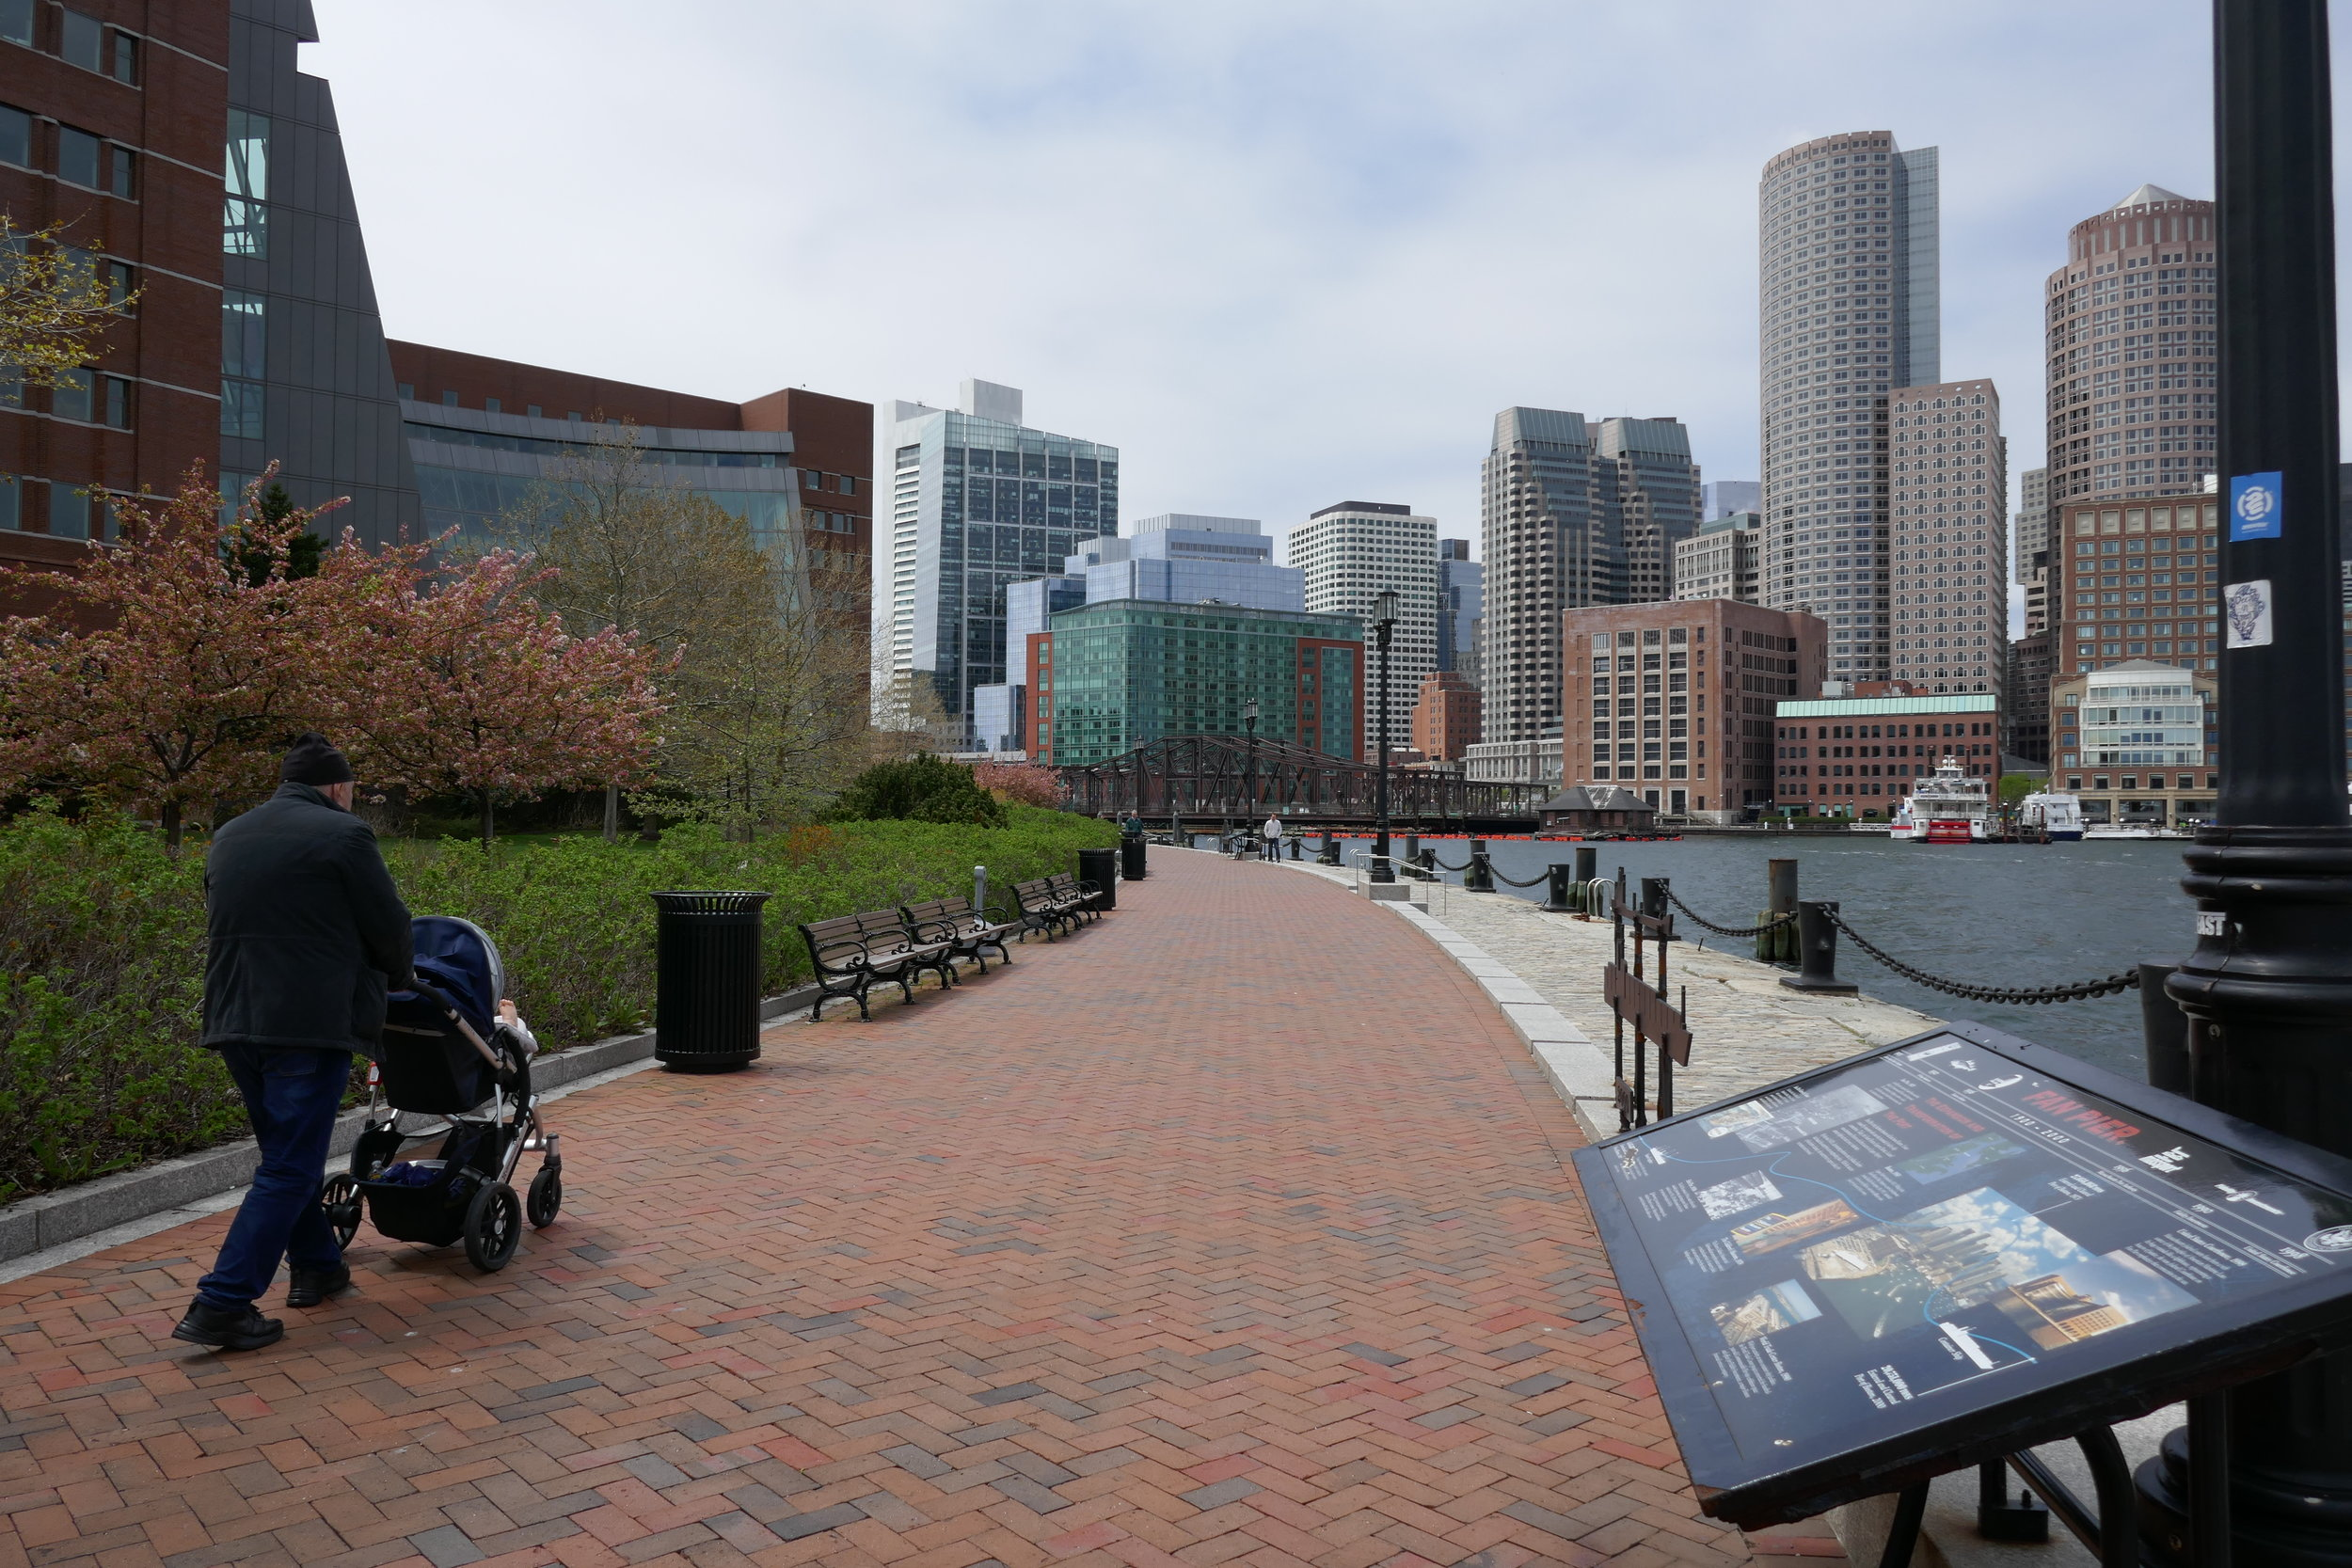 Moakley Courthouse and Boston Harborwalk on the South Boston waterfront; one of the more recent open space additions to the Boston Harbor shoreline. (NEWTONCOURT)